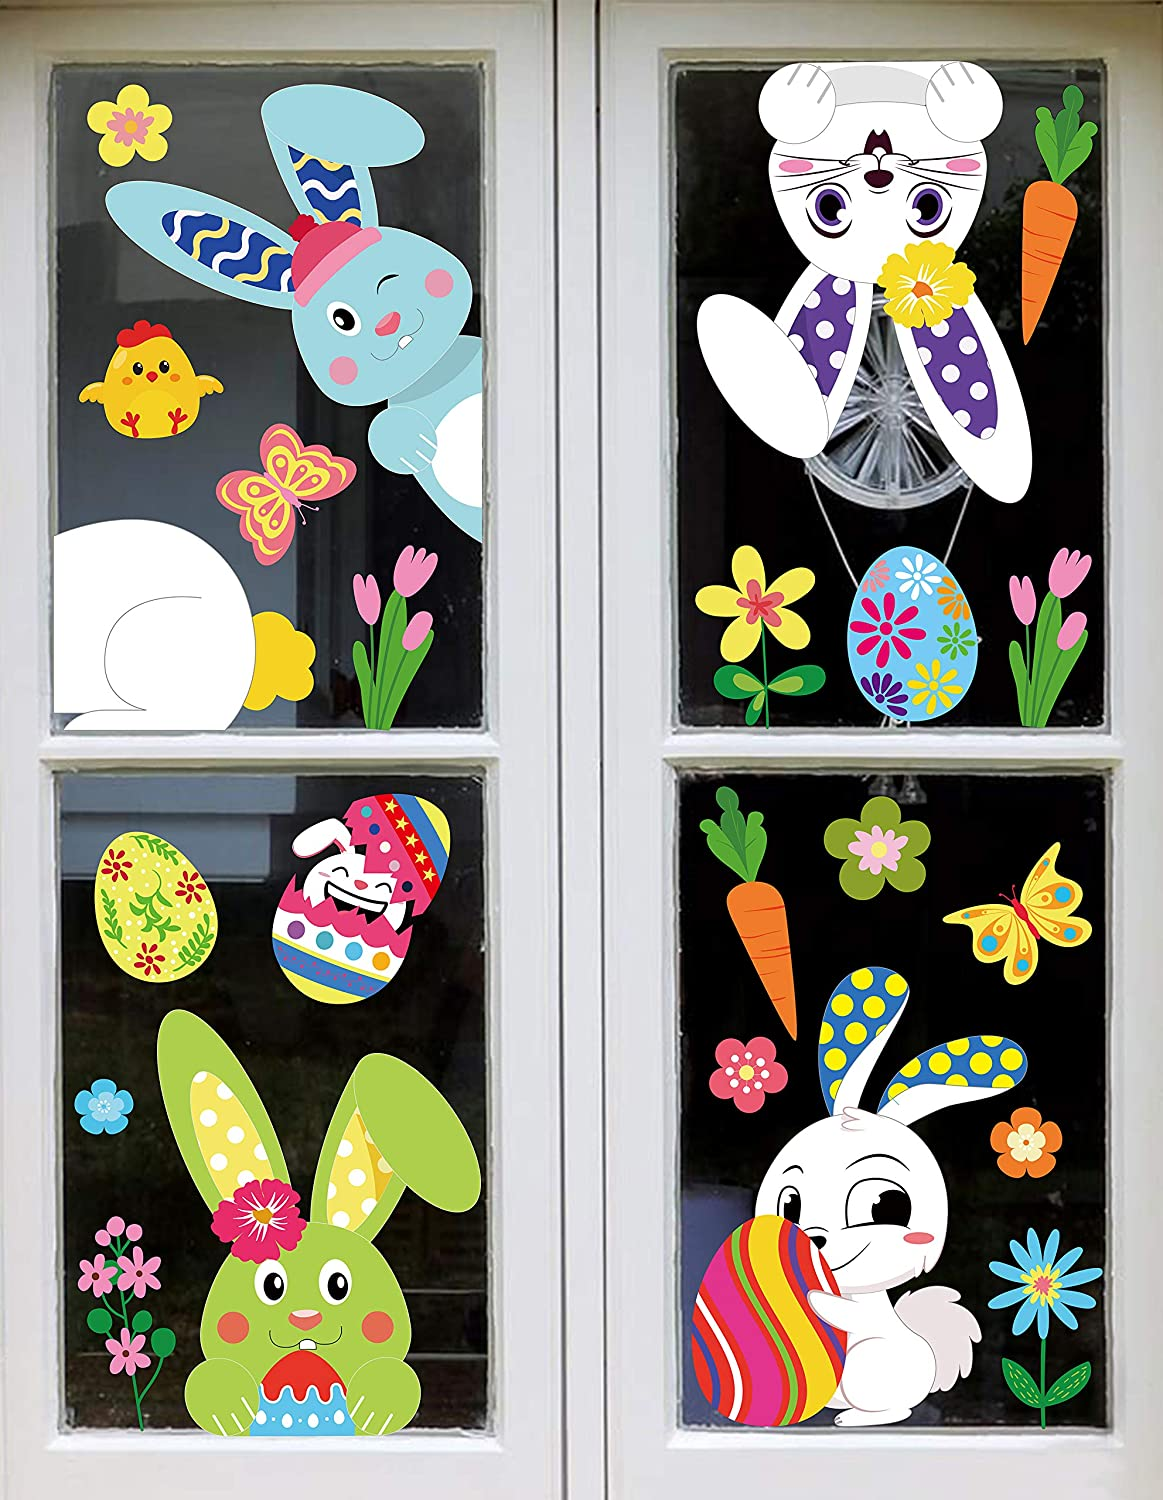 12PCS Easter Bunny Window Cling Decorations   Egg Hunt Games Decals Home  Party Ornaments